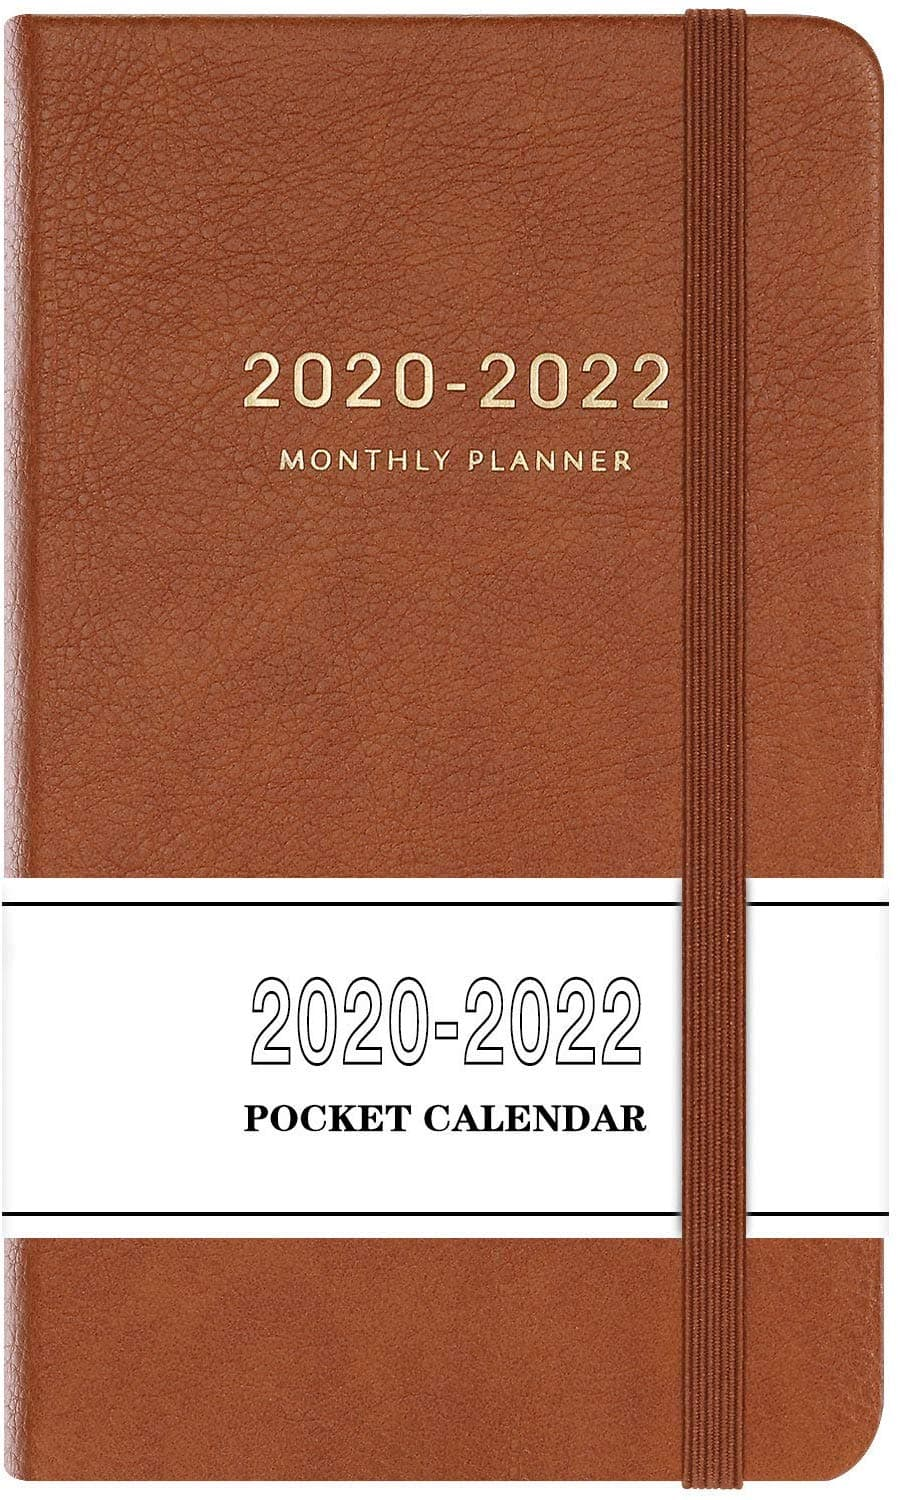 """2020-2022 Monthly Pocket Planner (36-Month) with 63 Notes Pages, 3.8"""" x 6.3"""" $4.59"""